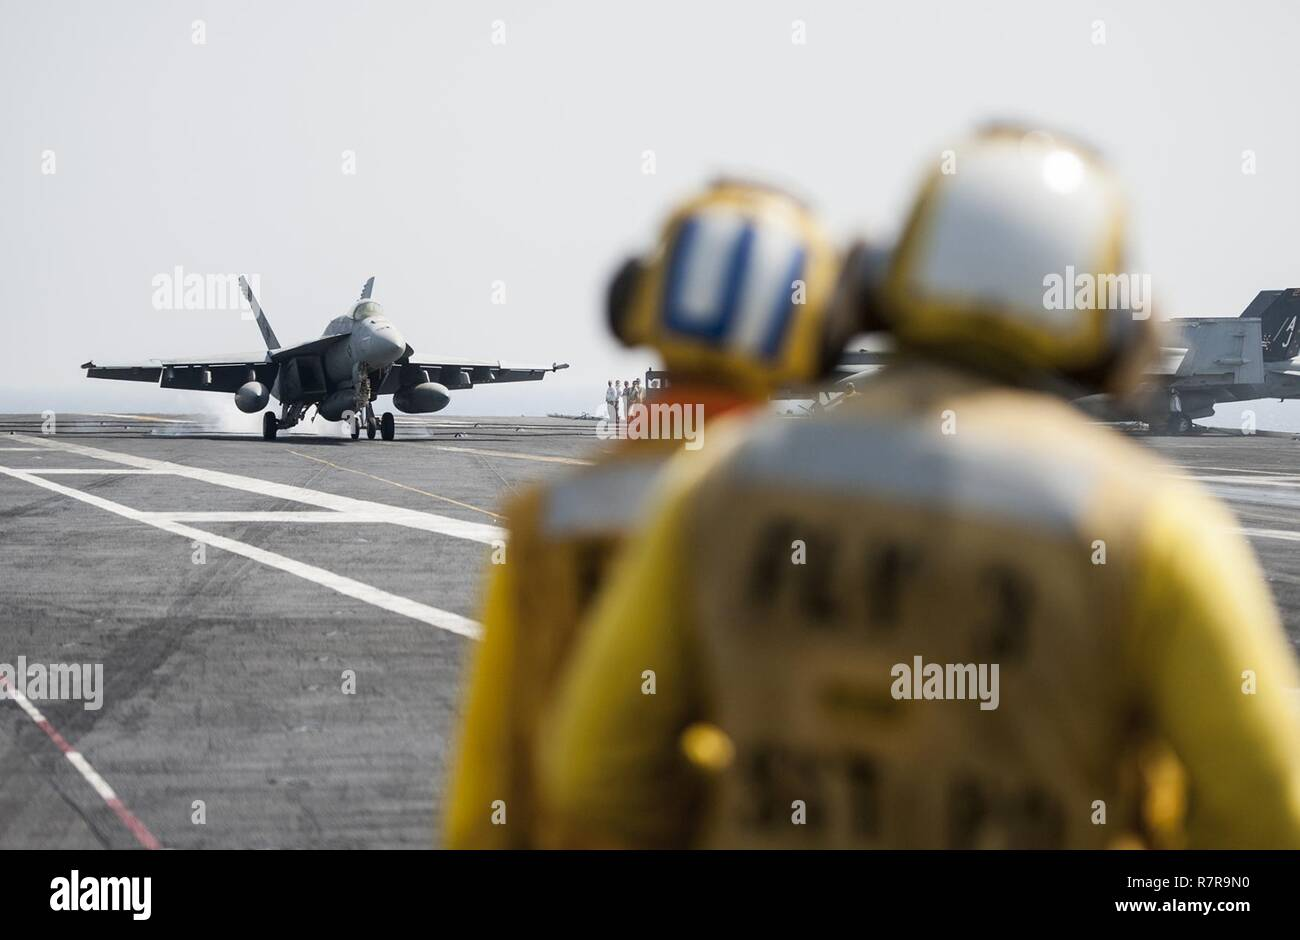 ARABIAN GULF (March 27, 2017) An F/A-18E Super Hornet attached to